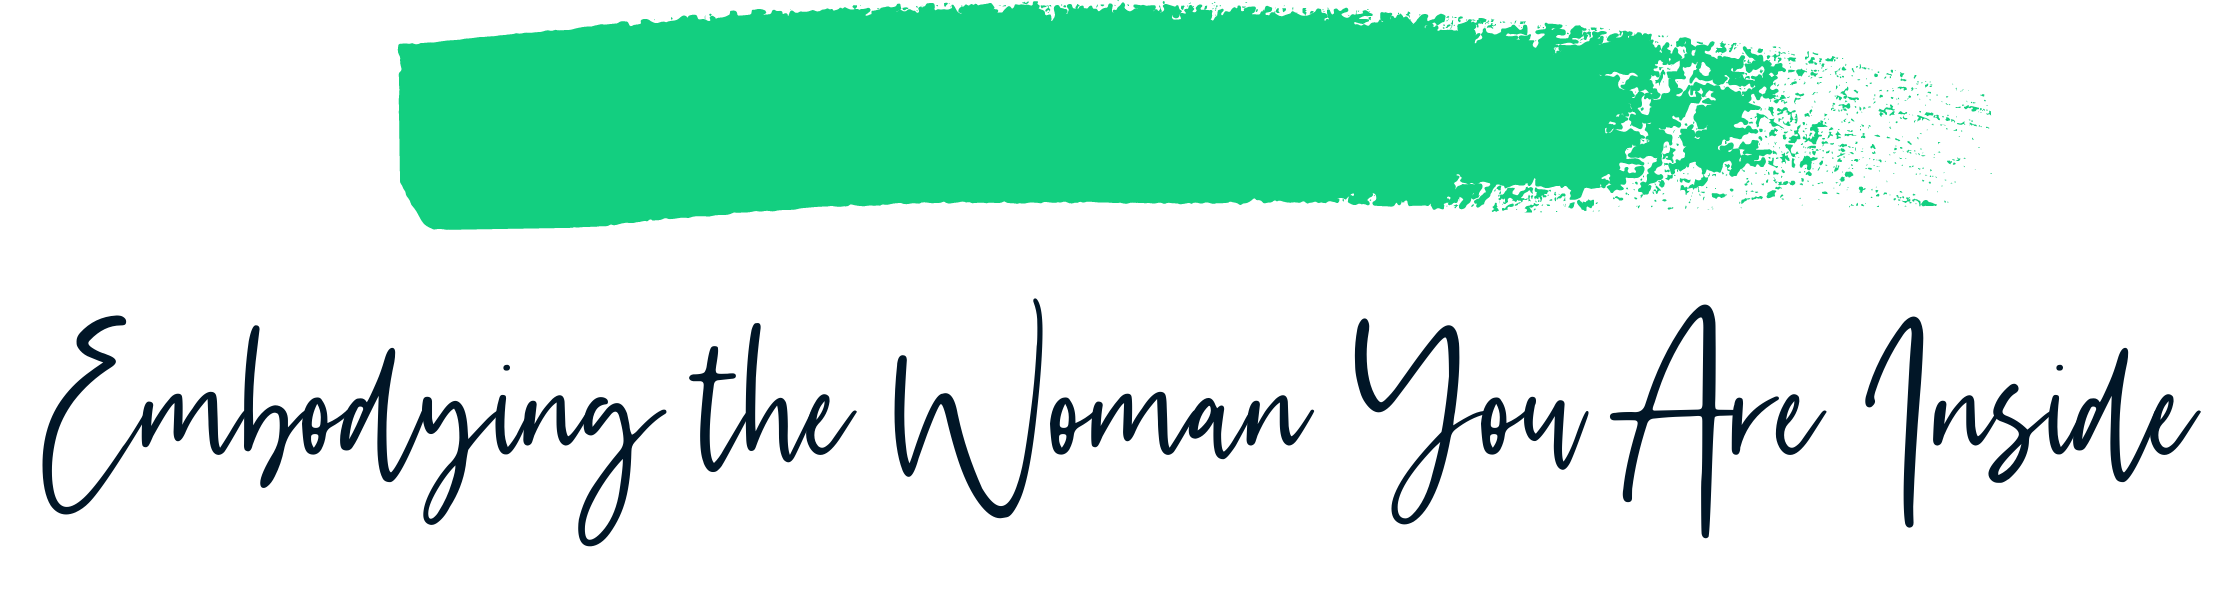 Embodying the Woman You Are Inside